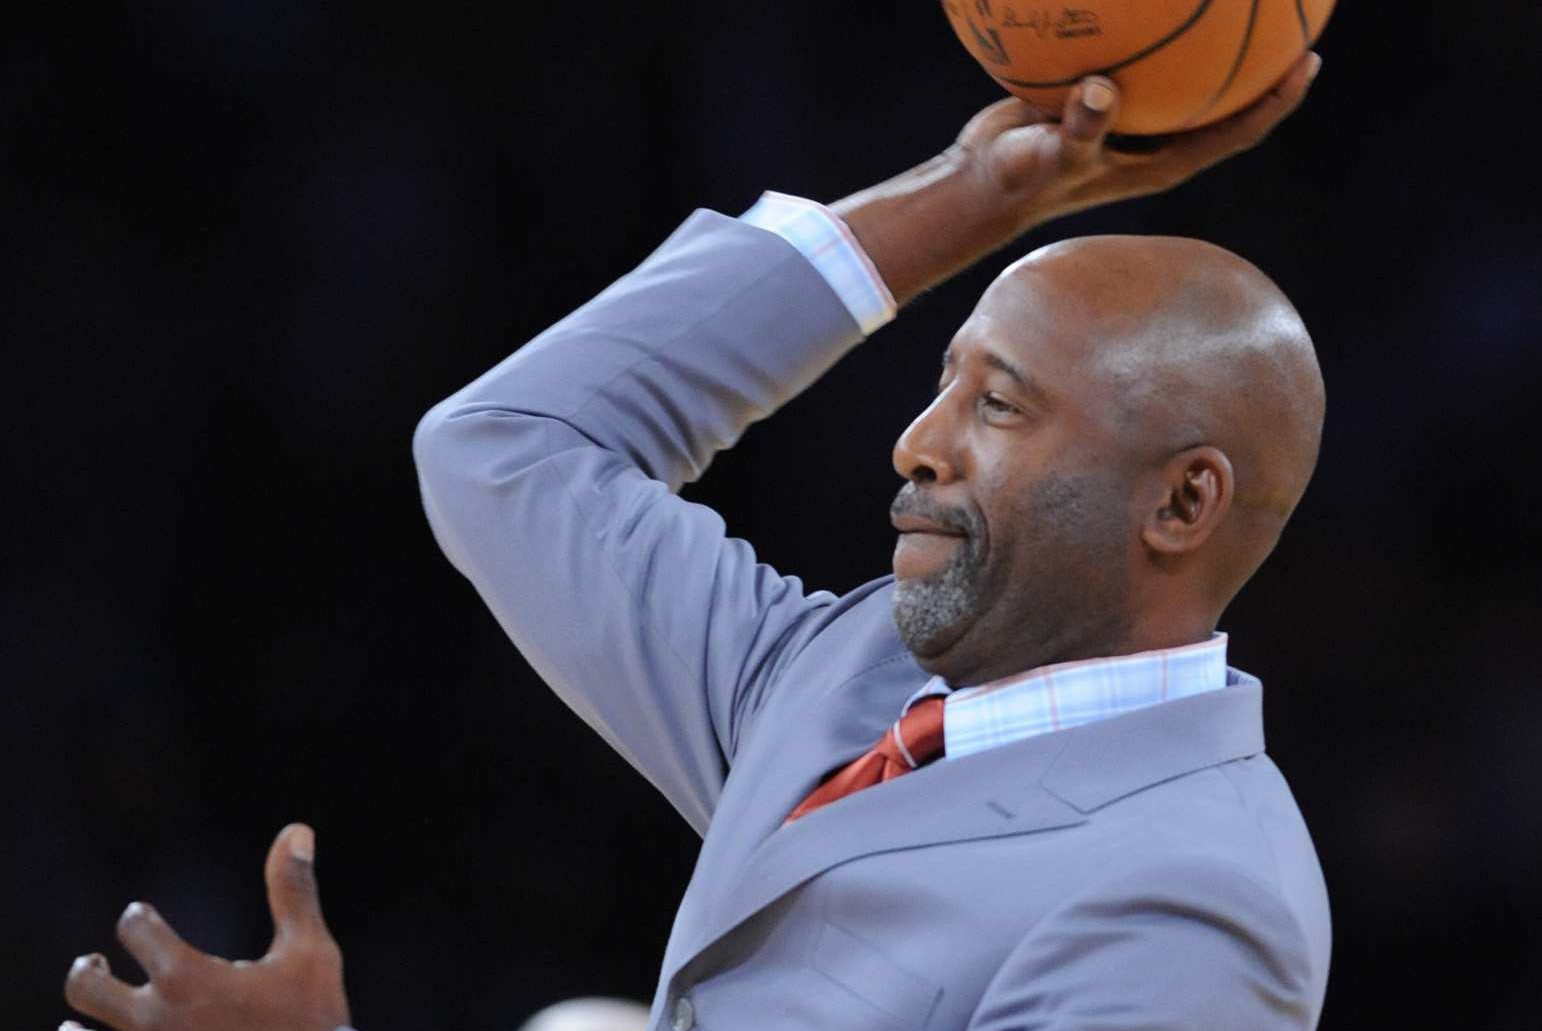 James Worthy to represent Los Angeles Lakers at next month s draft